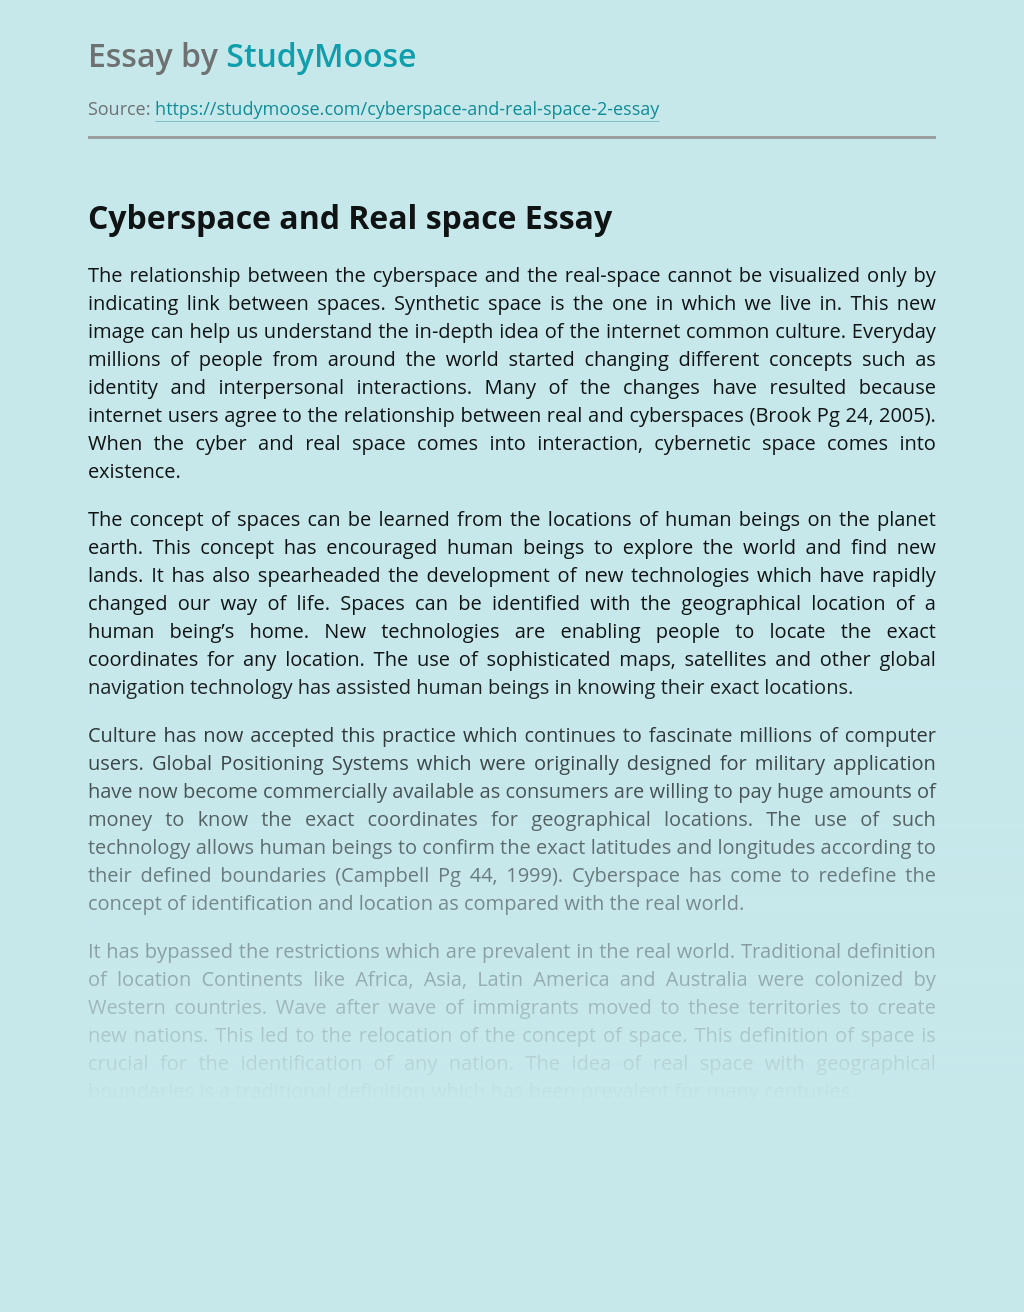 Cyberspace and Real space